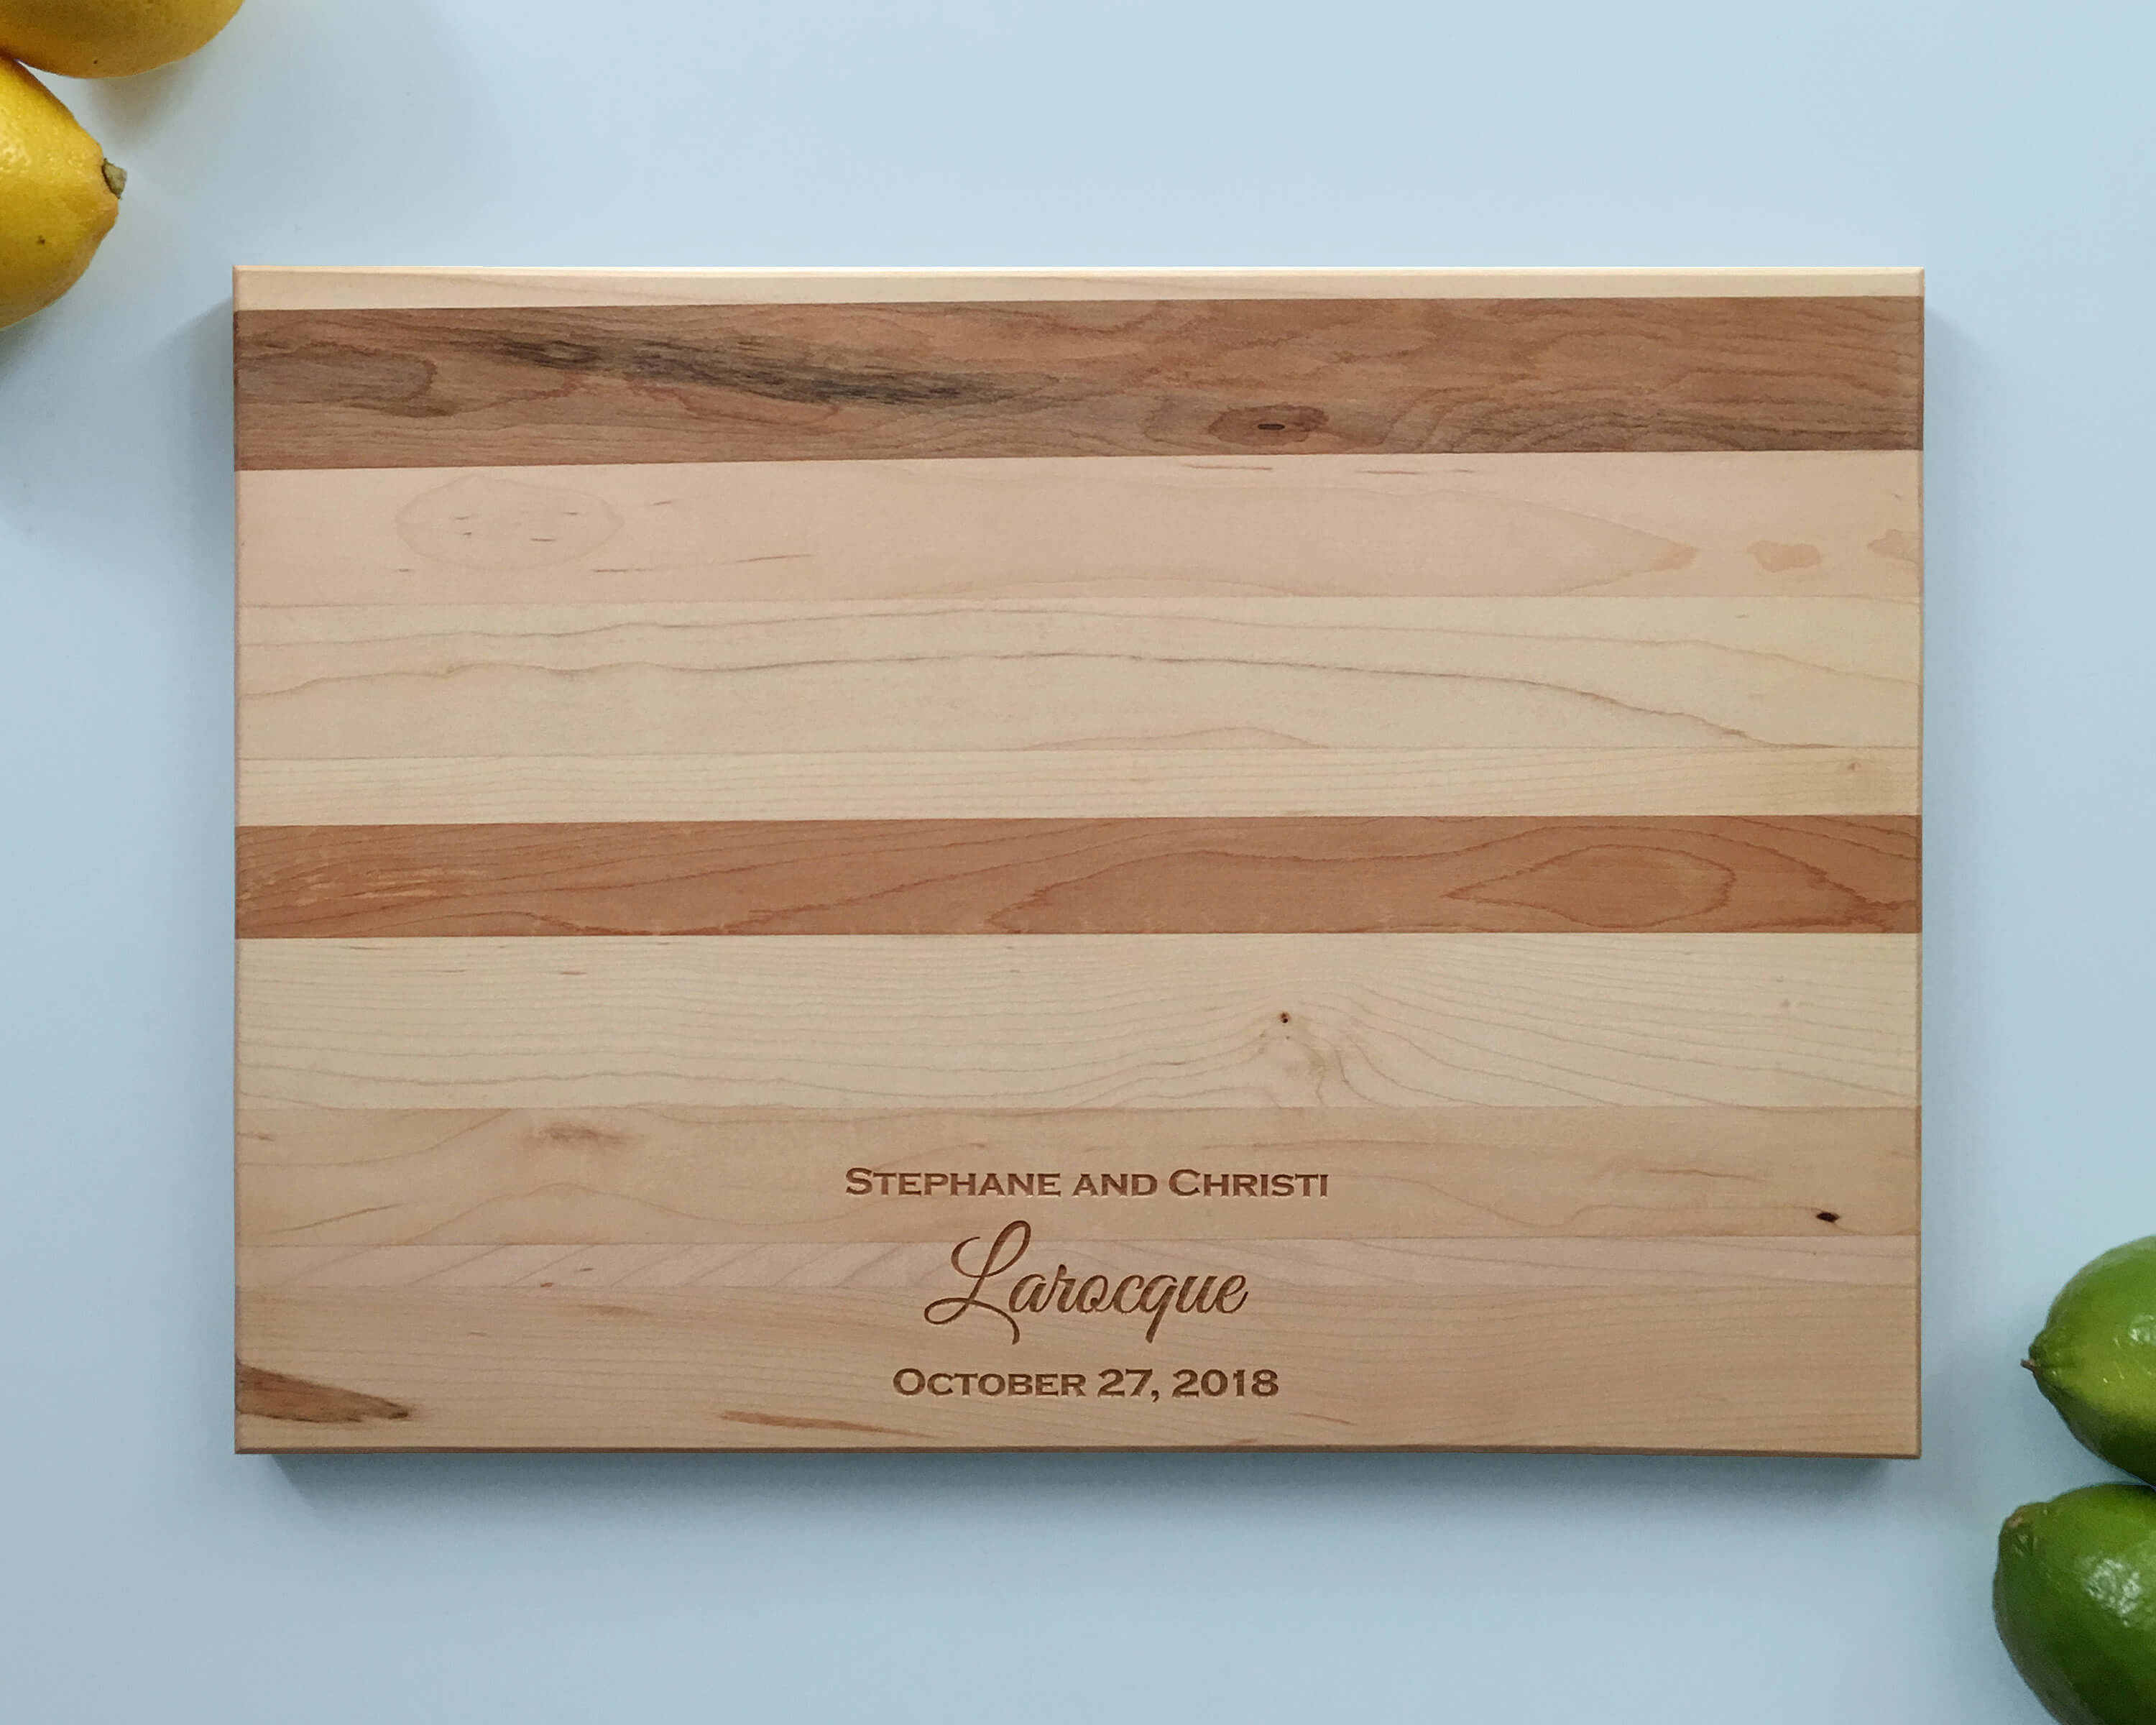 Personalized_and_Engraved_Wood_Cutting_Board_Wedding_Board